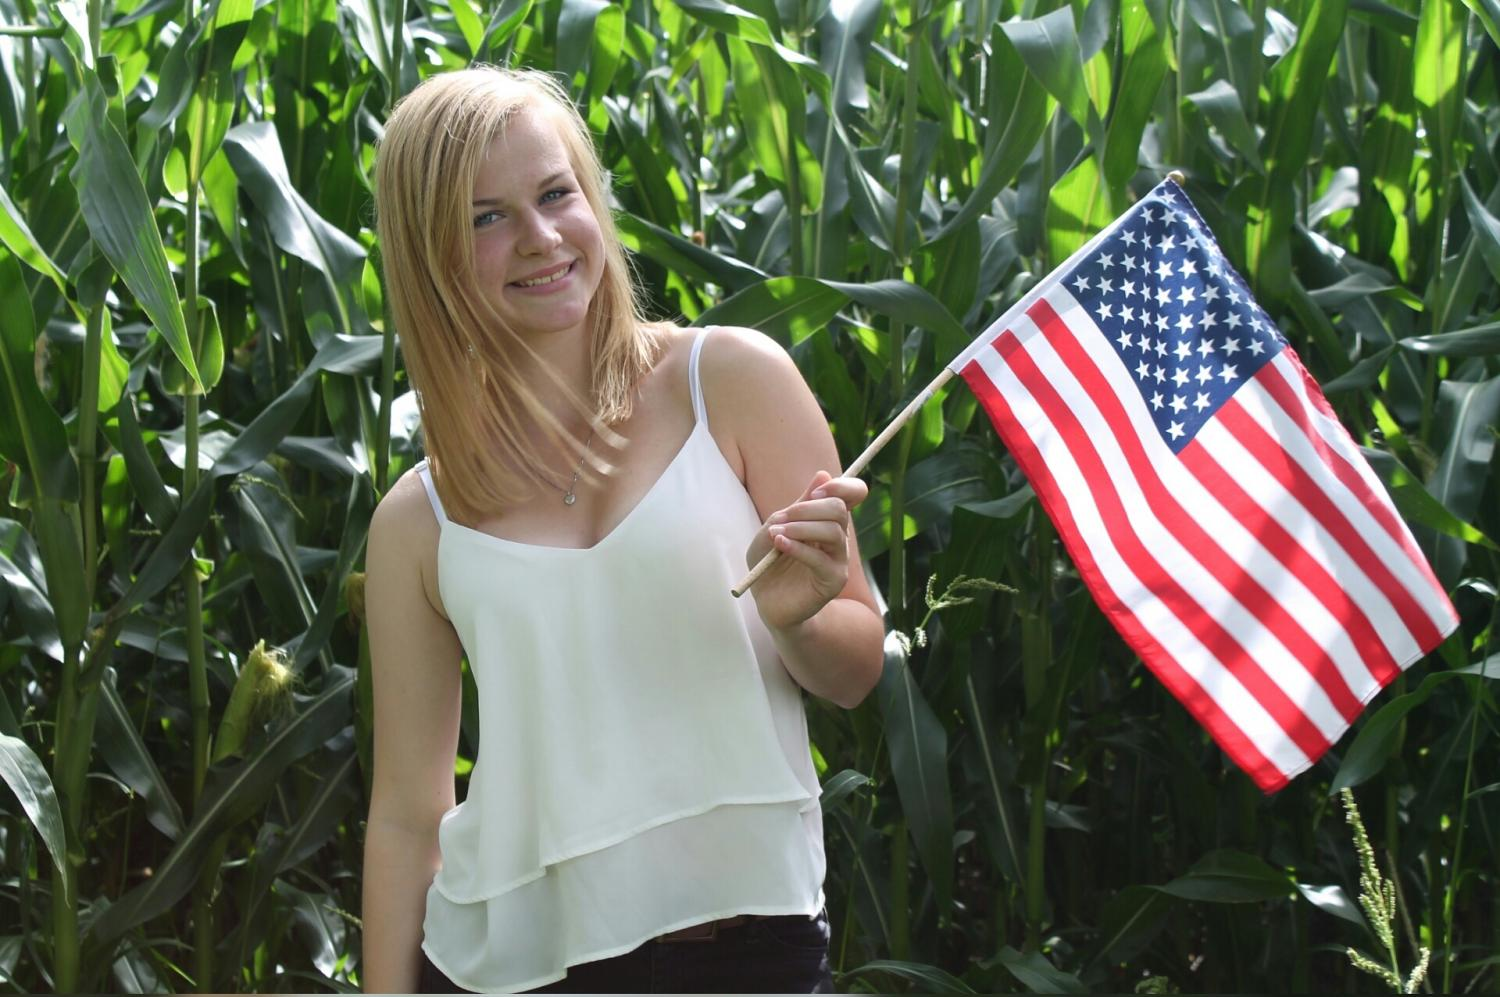 Sophomore Louisa Boockhoff posing with an American Flag.